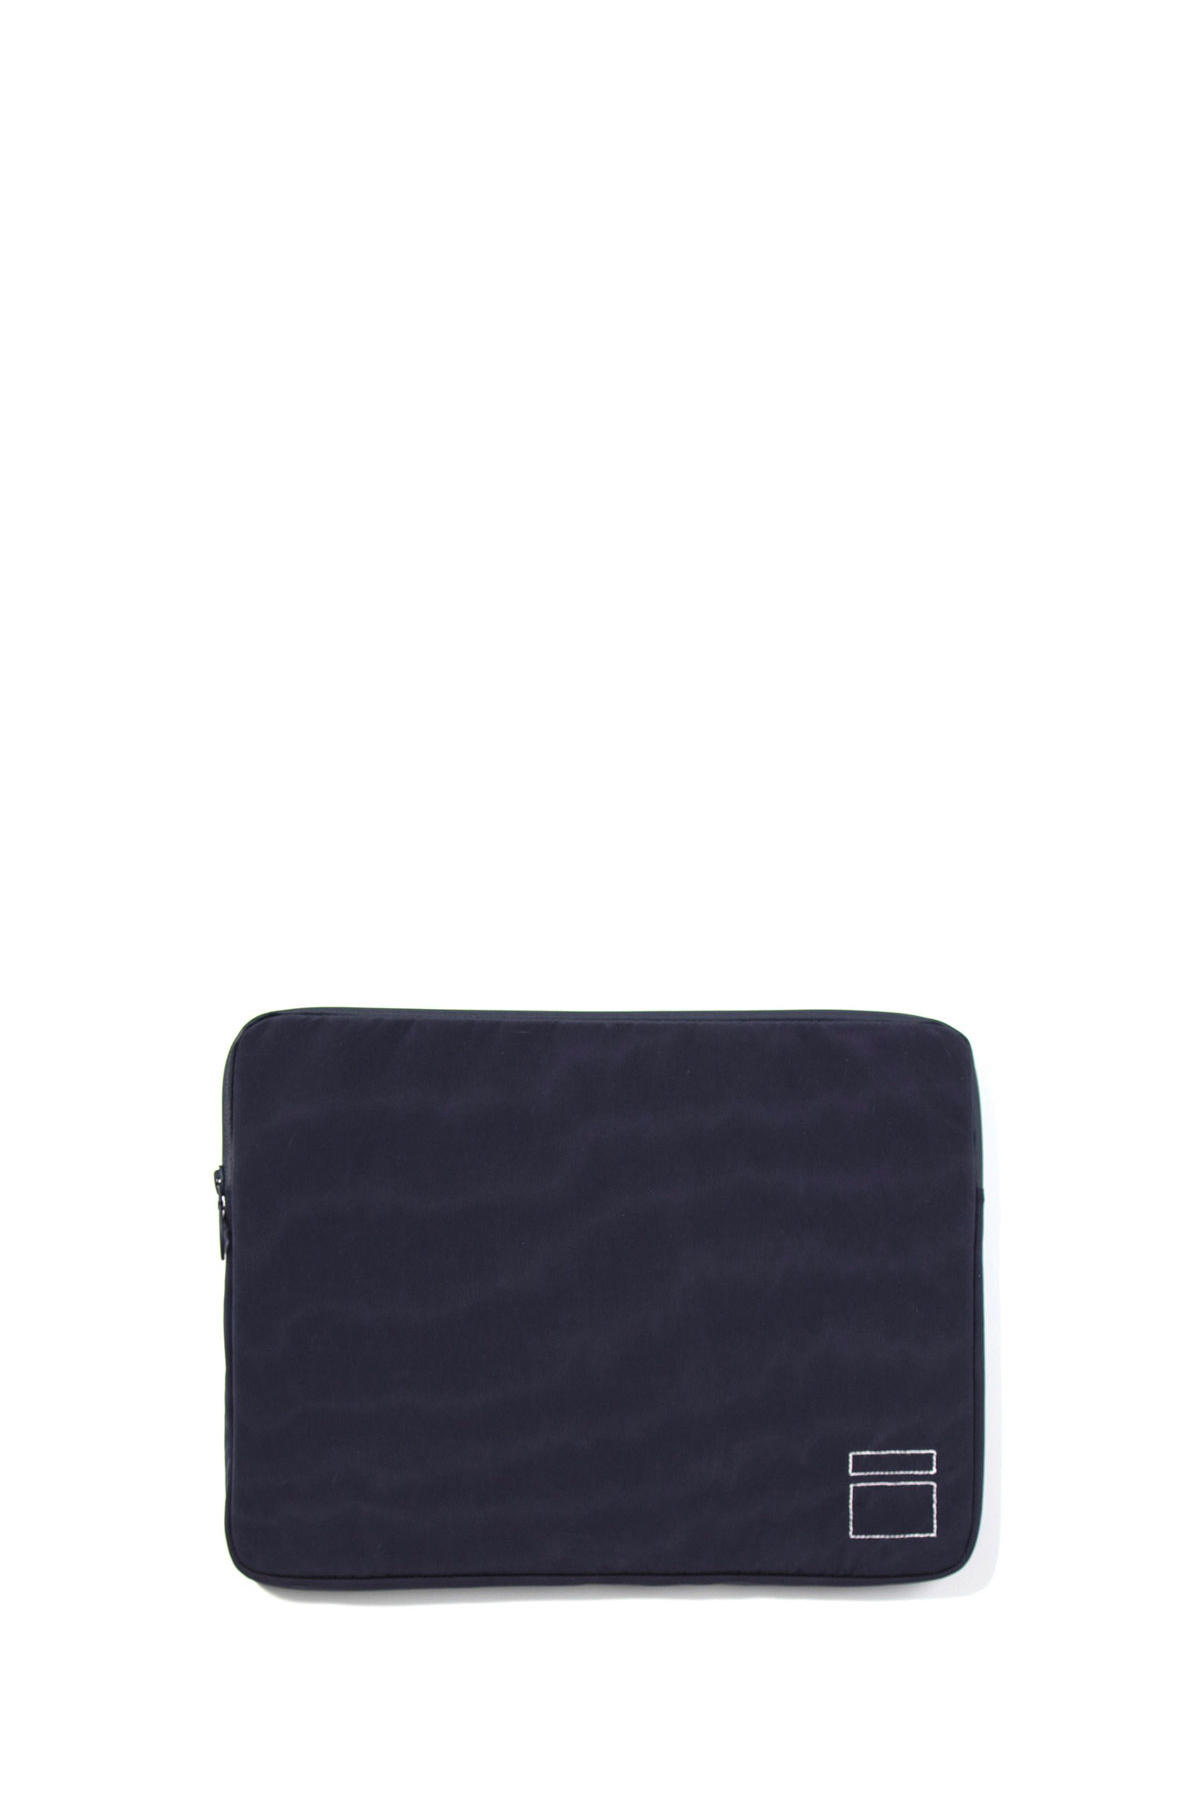 Blankof : PLG 01 16IN Document Case (Navy)